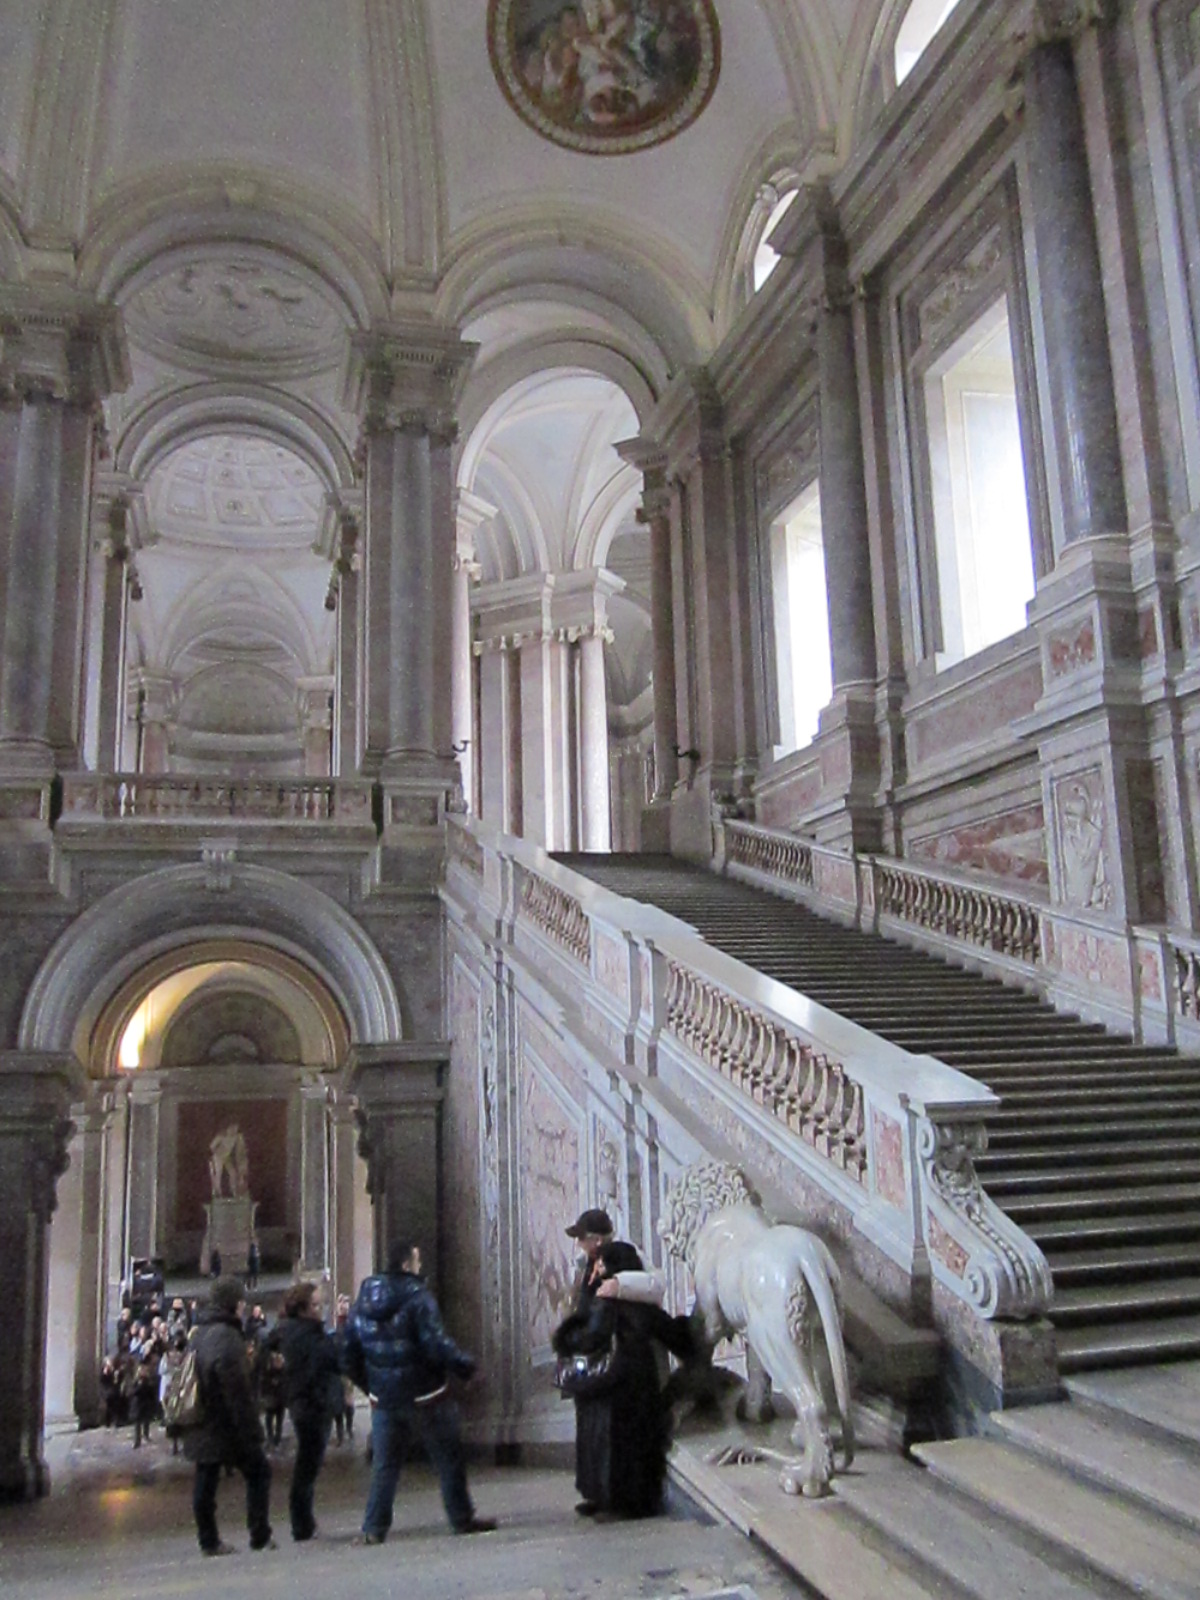 Netherley traveling home and away naples caserta palace of caserta interior - Interior designer caserta ...